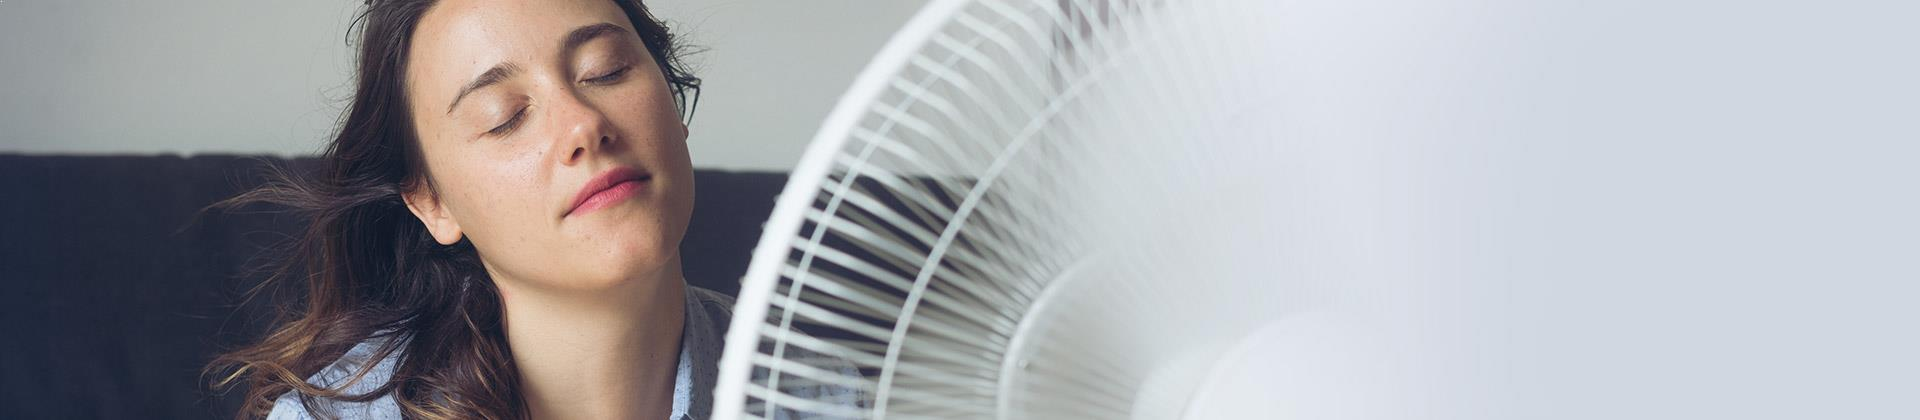 Trinity Heating and Air Conditioning in Pensacola offers 24/7 Emergency Services